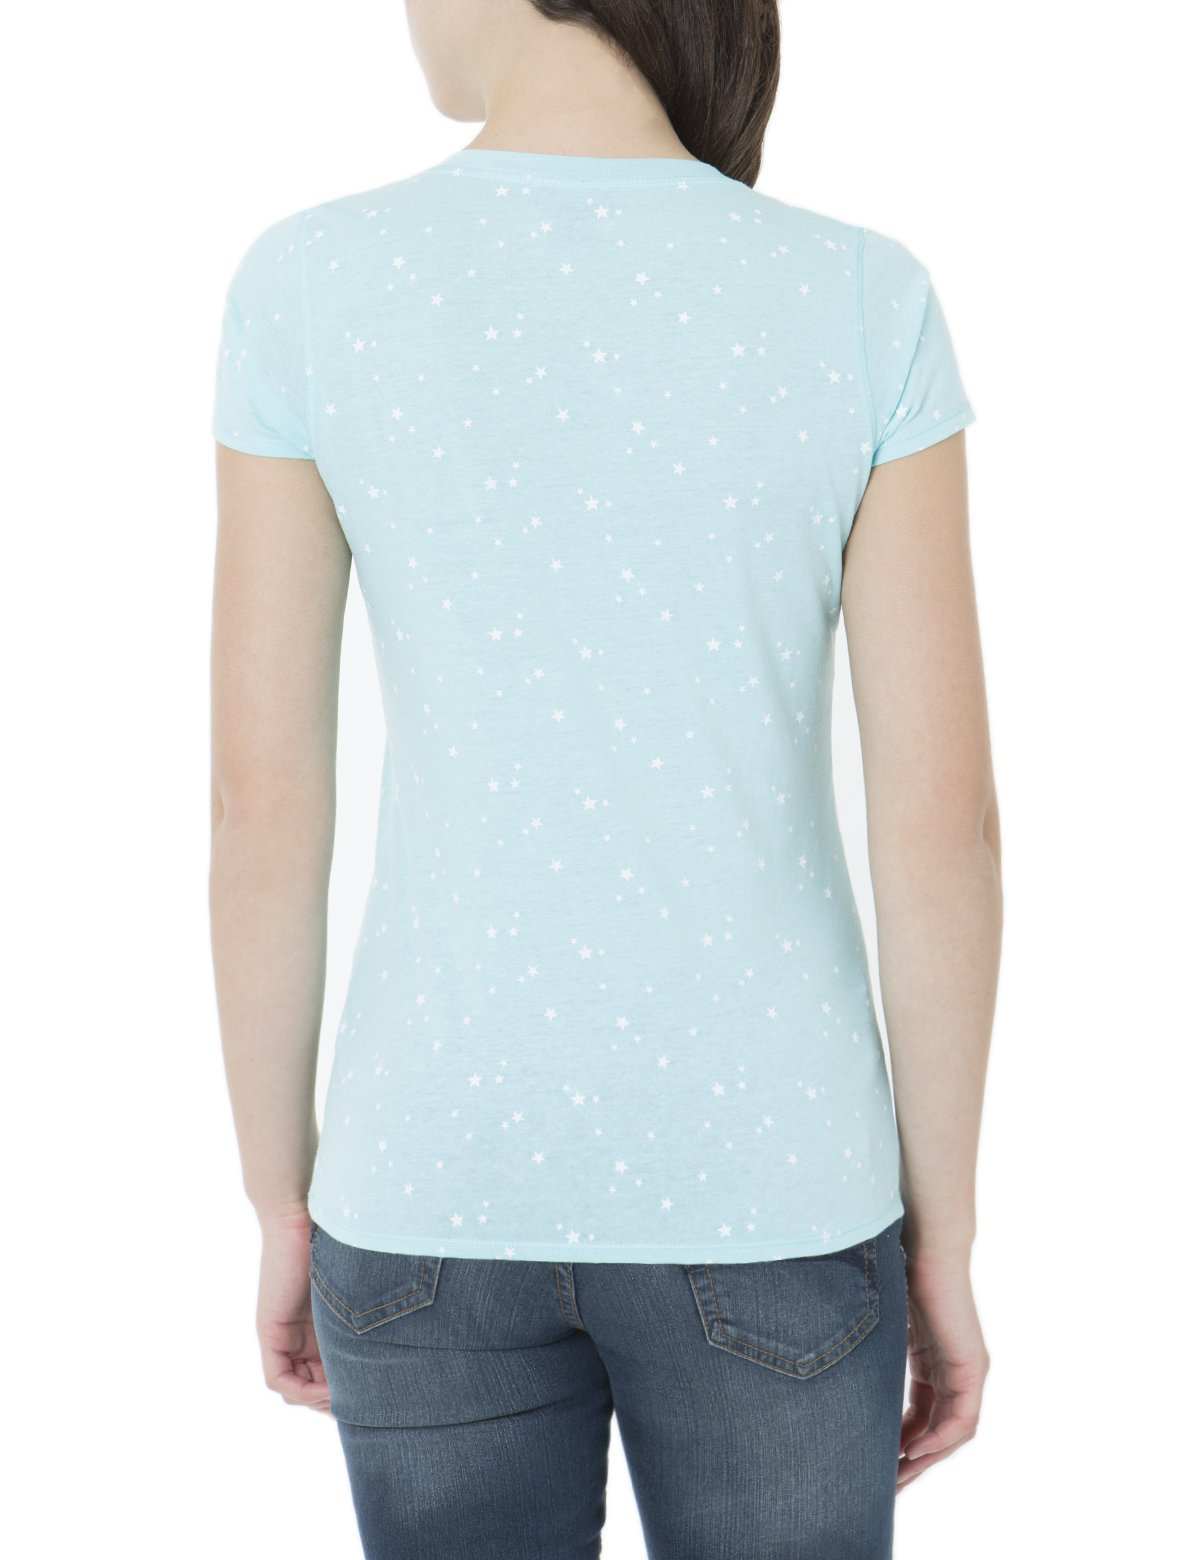 STAR PRINT T-SHIRT - U.S. Polo Assn.